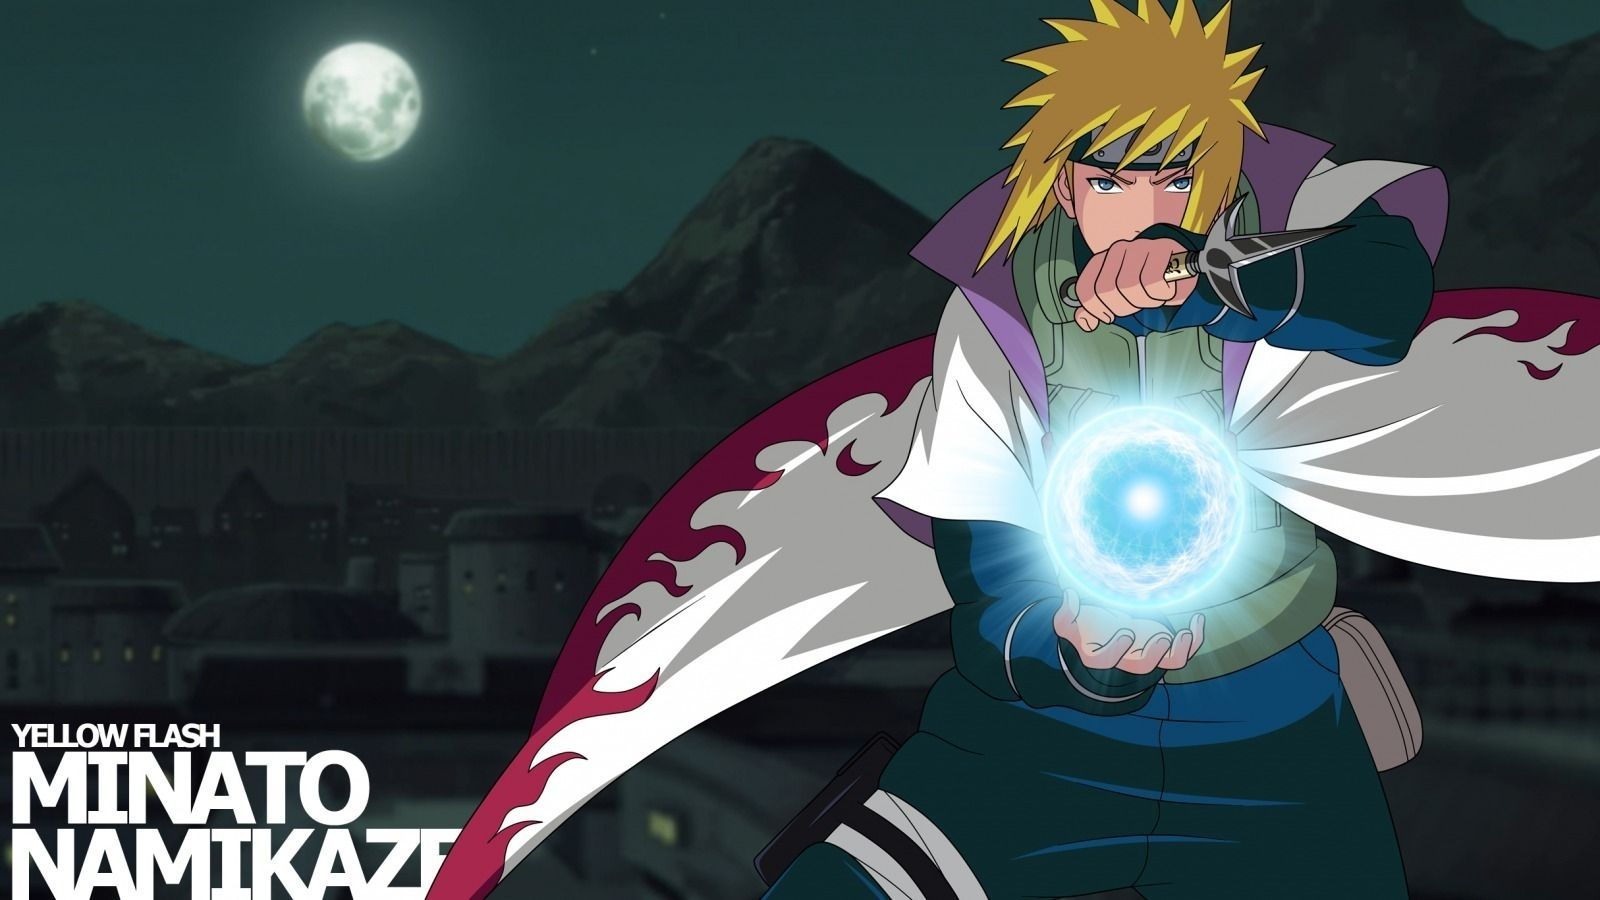 10 Top Minato Namikaze Wallpaper Hd 1920x1080 Full Hd 1080p For Pc